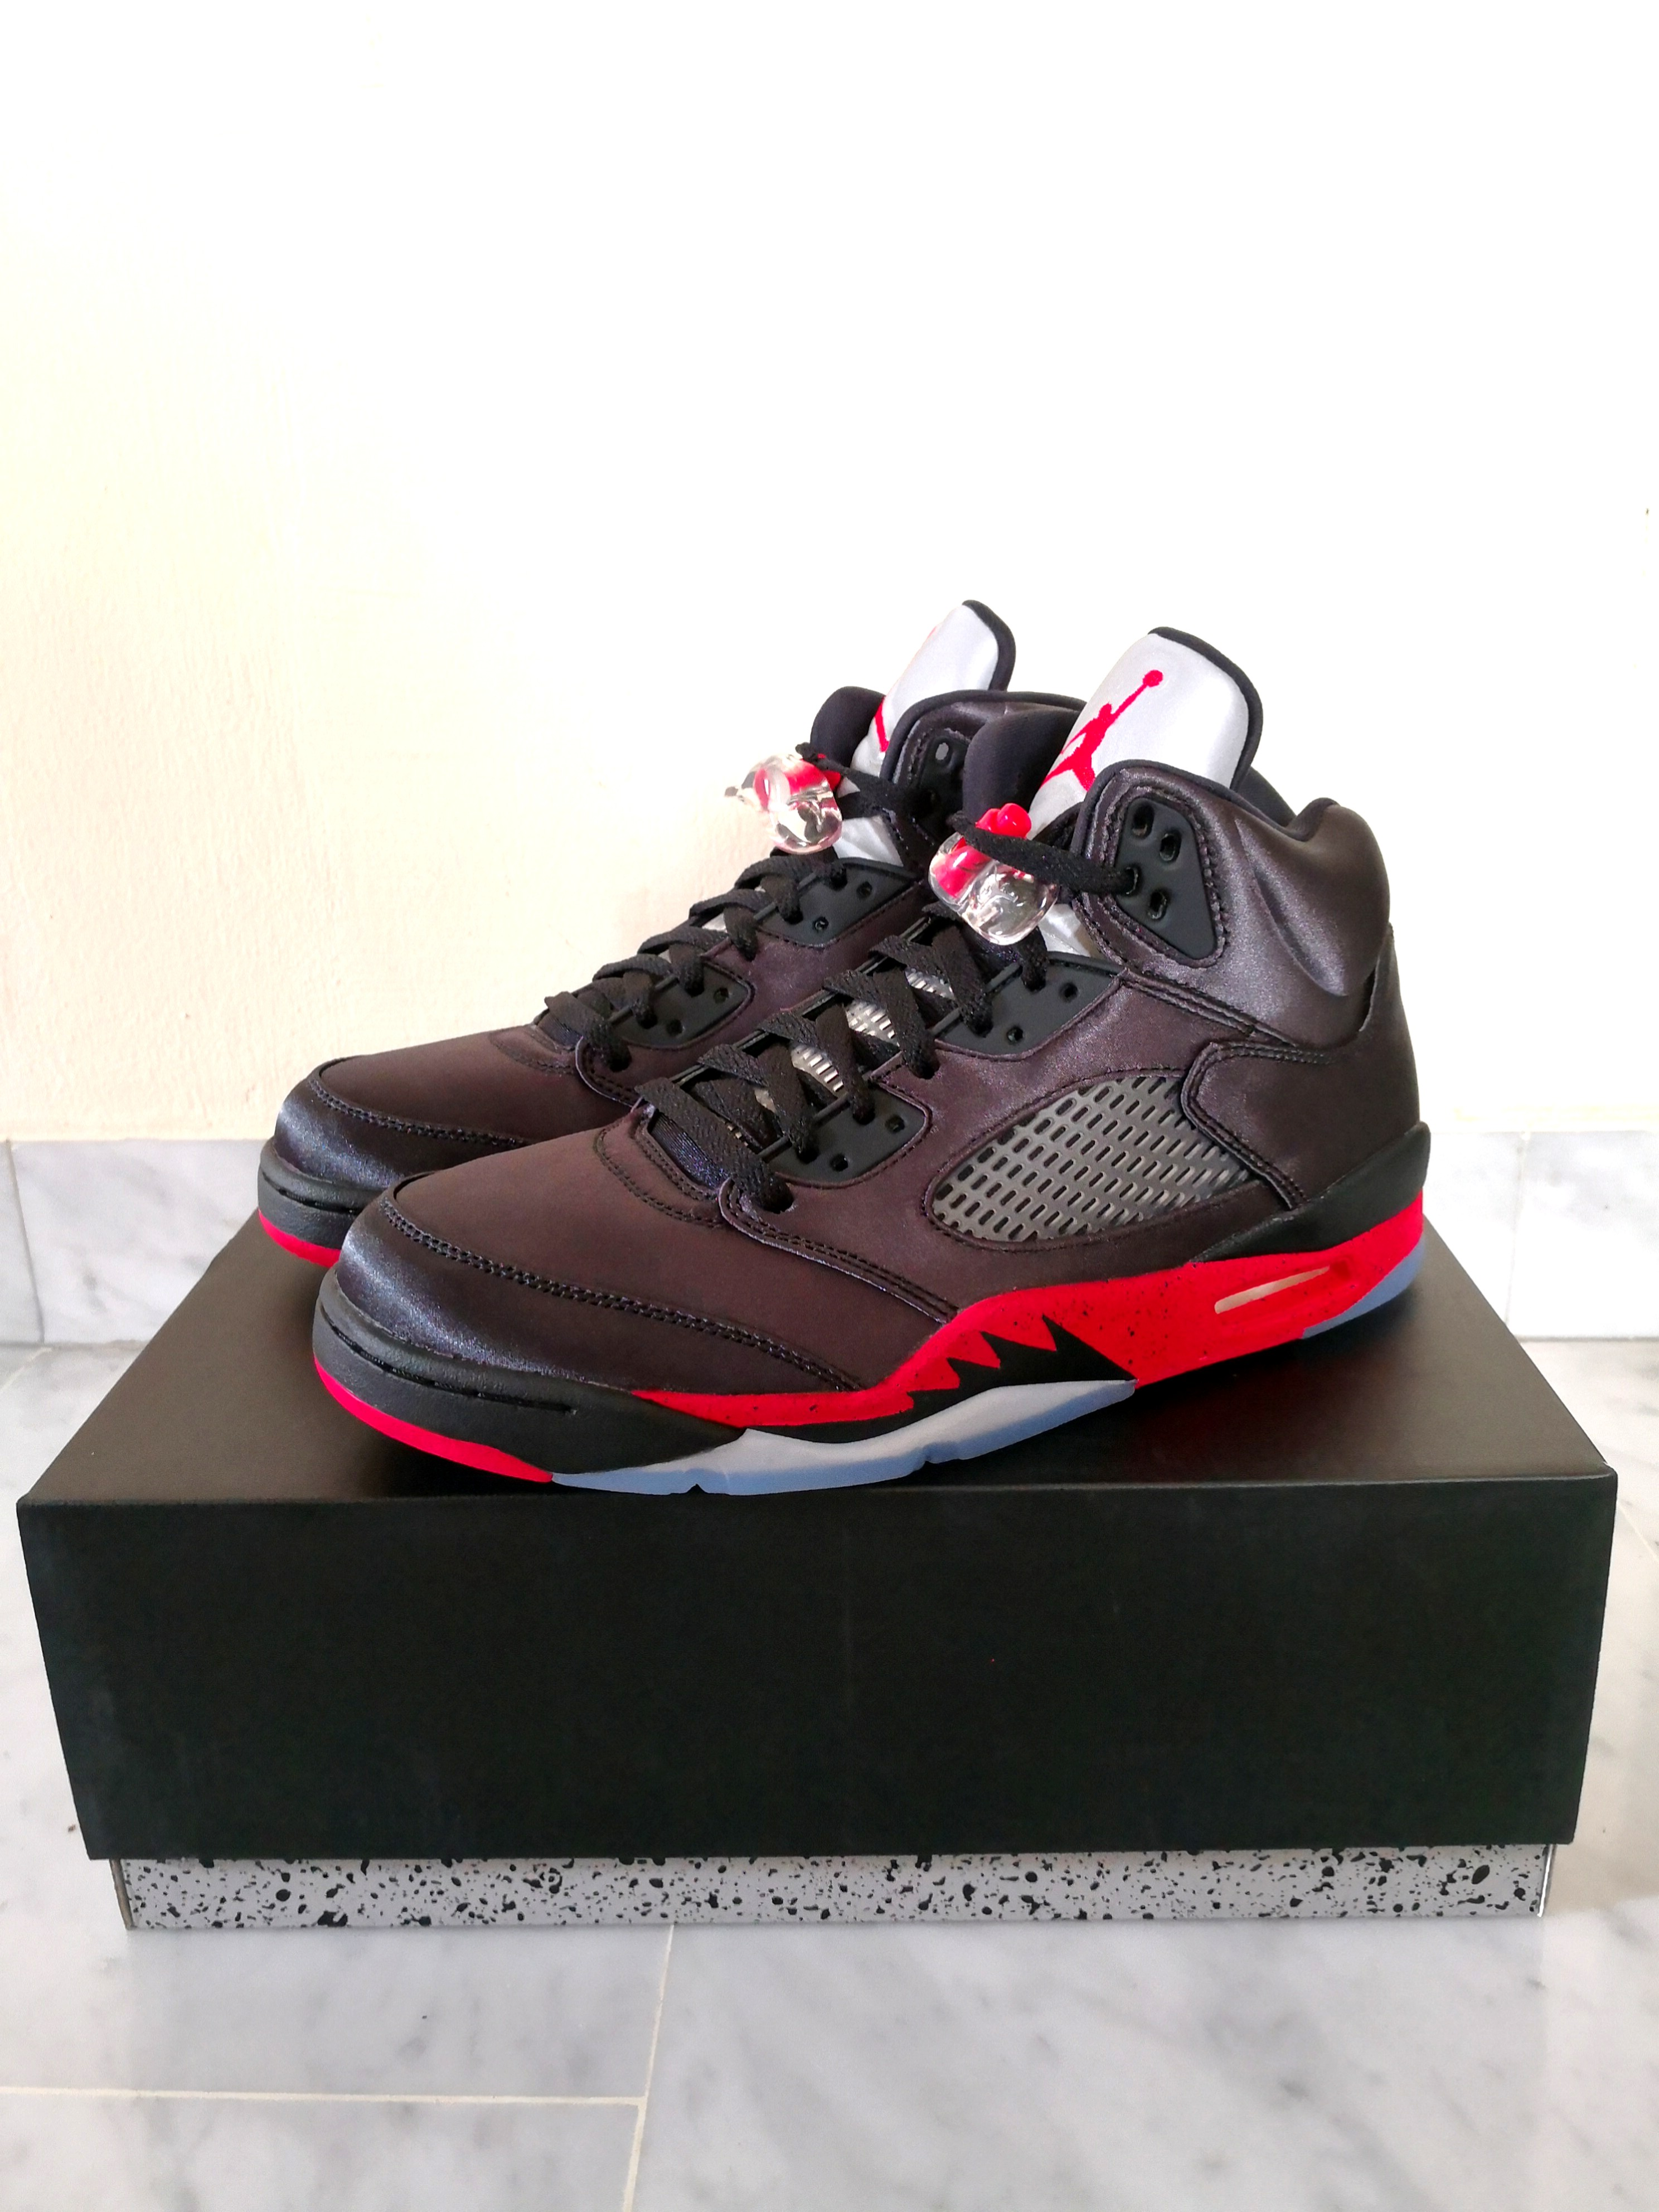 quality design 5ce34 b01d9 Air Jordan 5 stain us9. 5, Men s Fashion, Footwear, Sneakers on ...